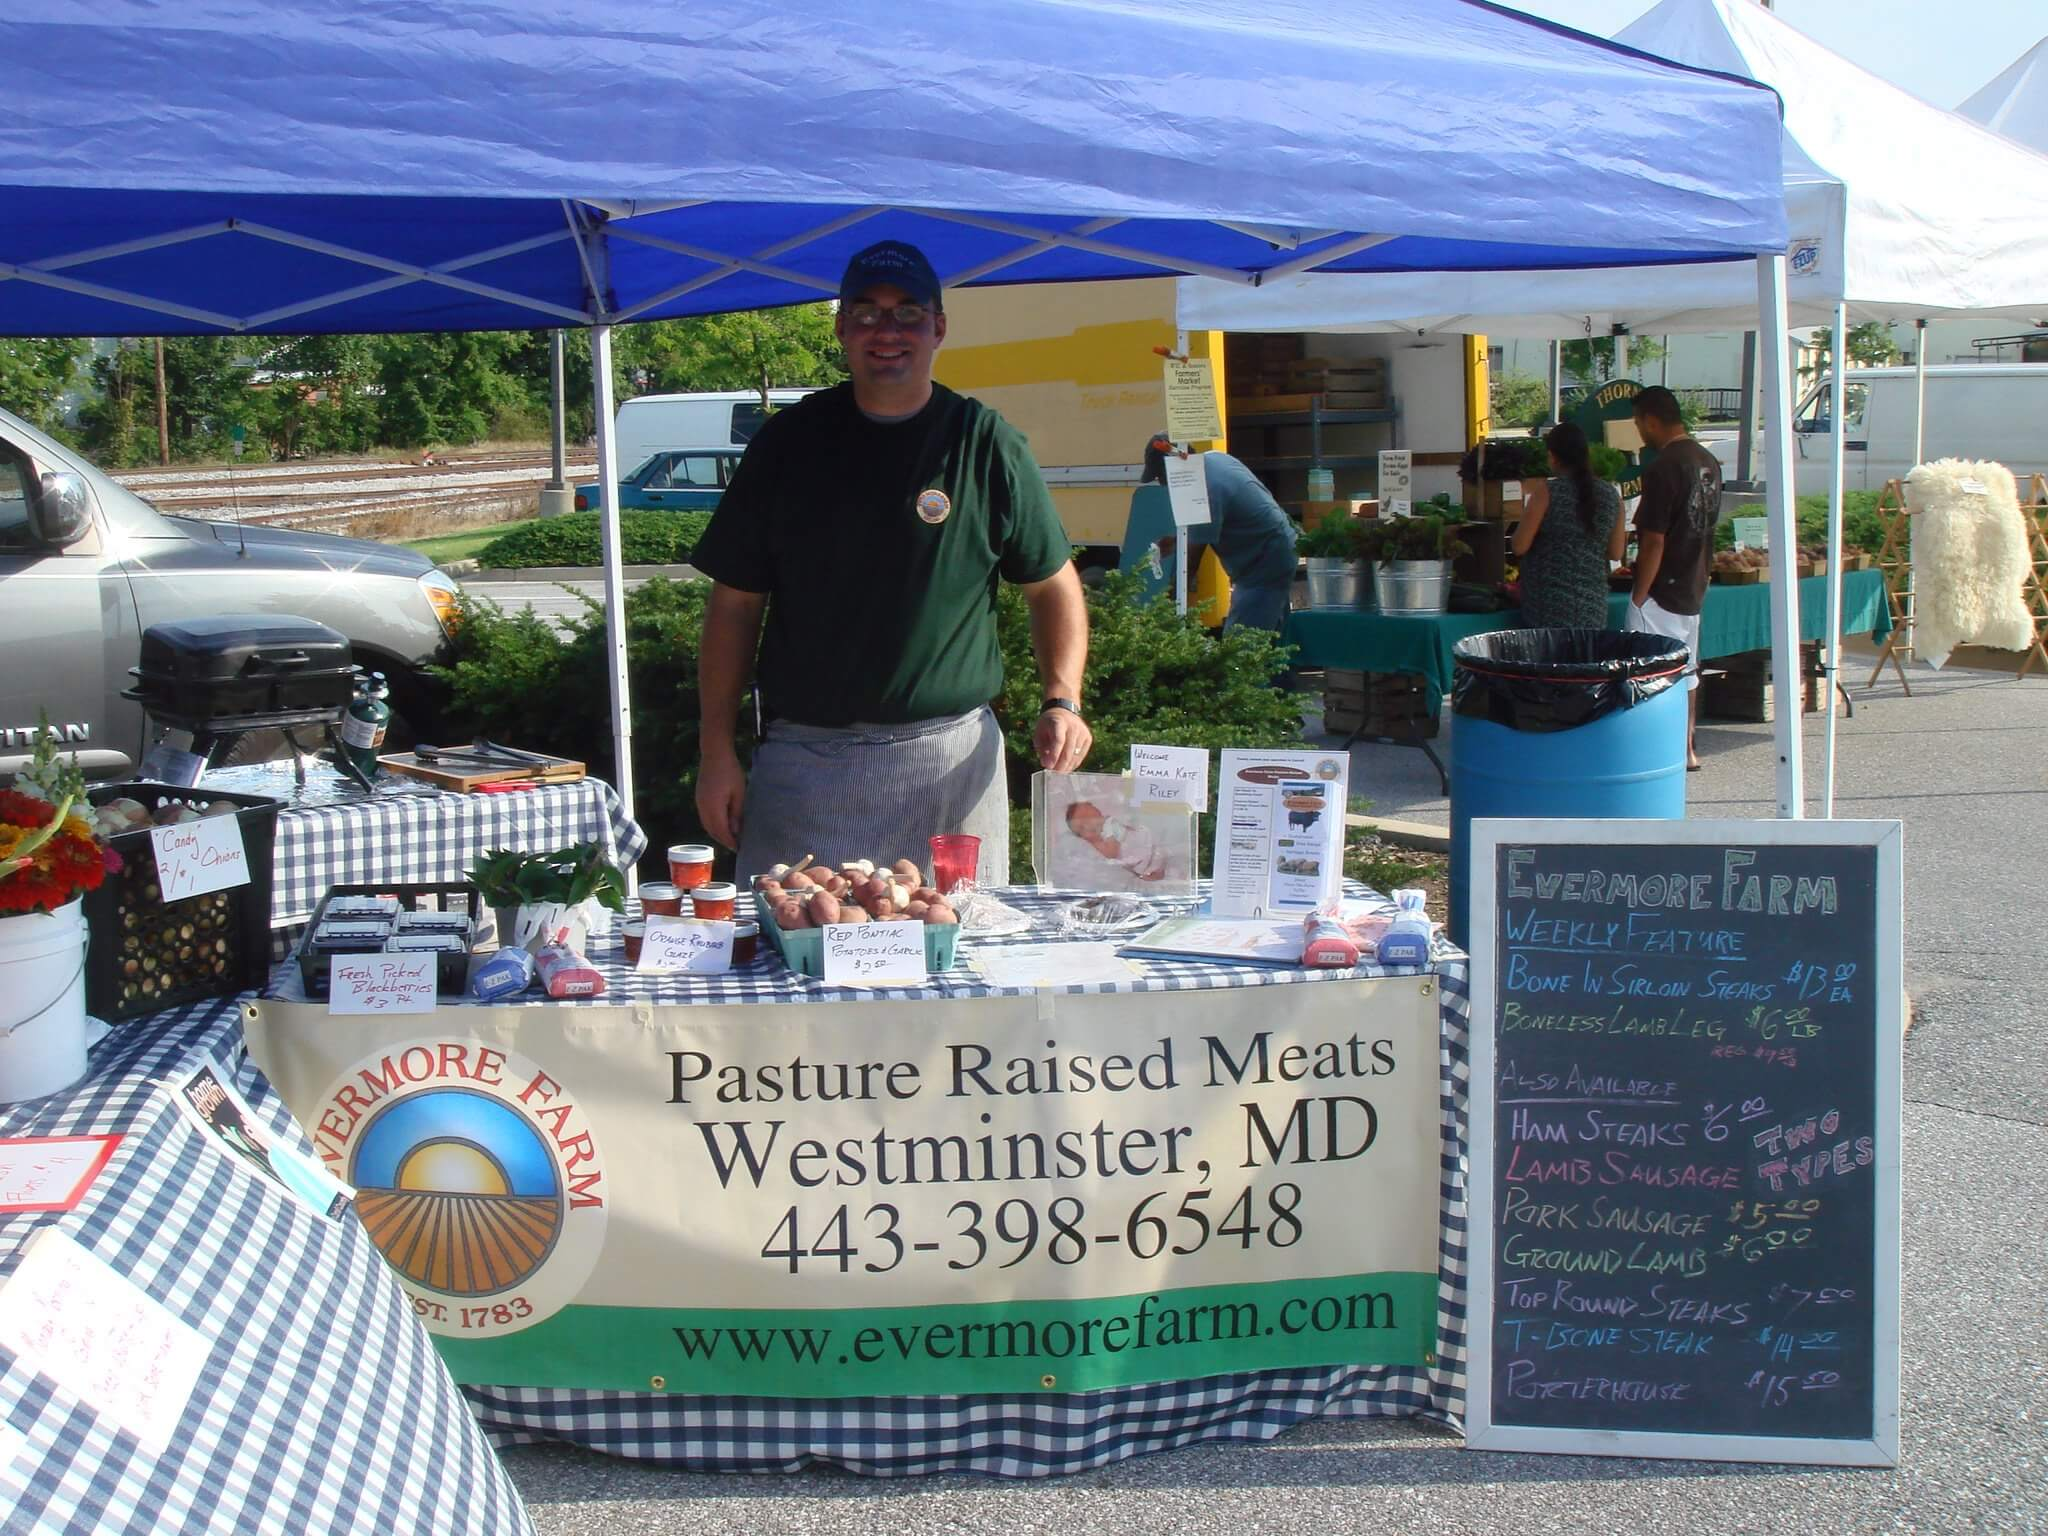 Evermore Farm Products | Westminster, MD Grass Fed Beef and Pork